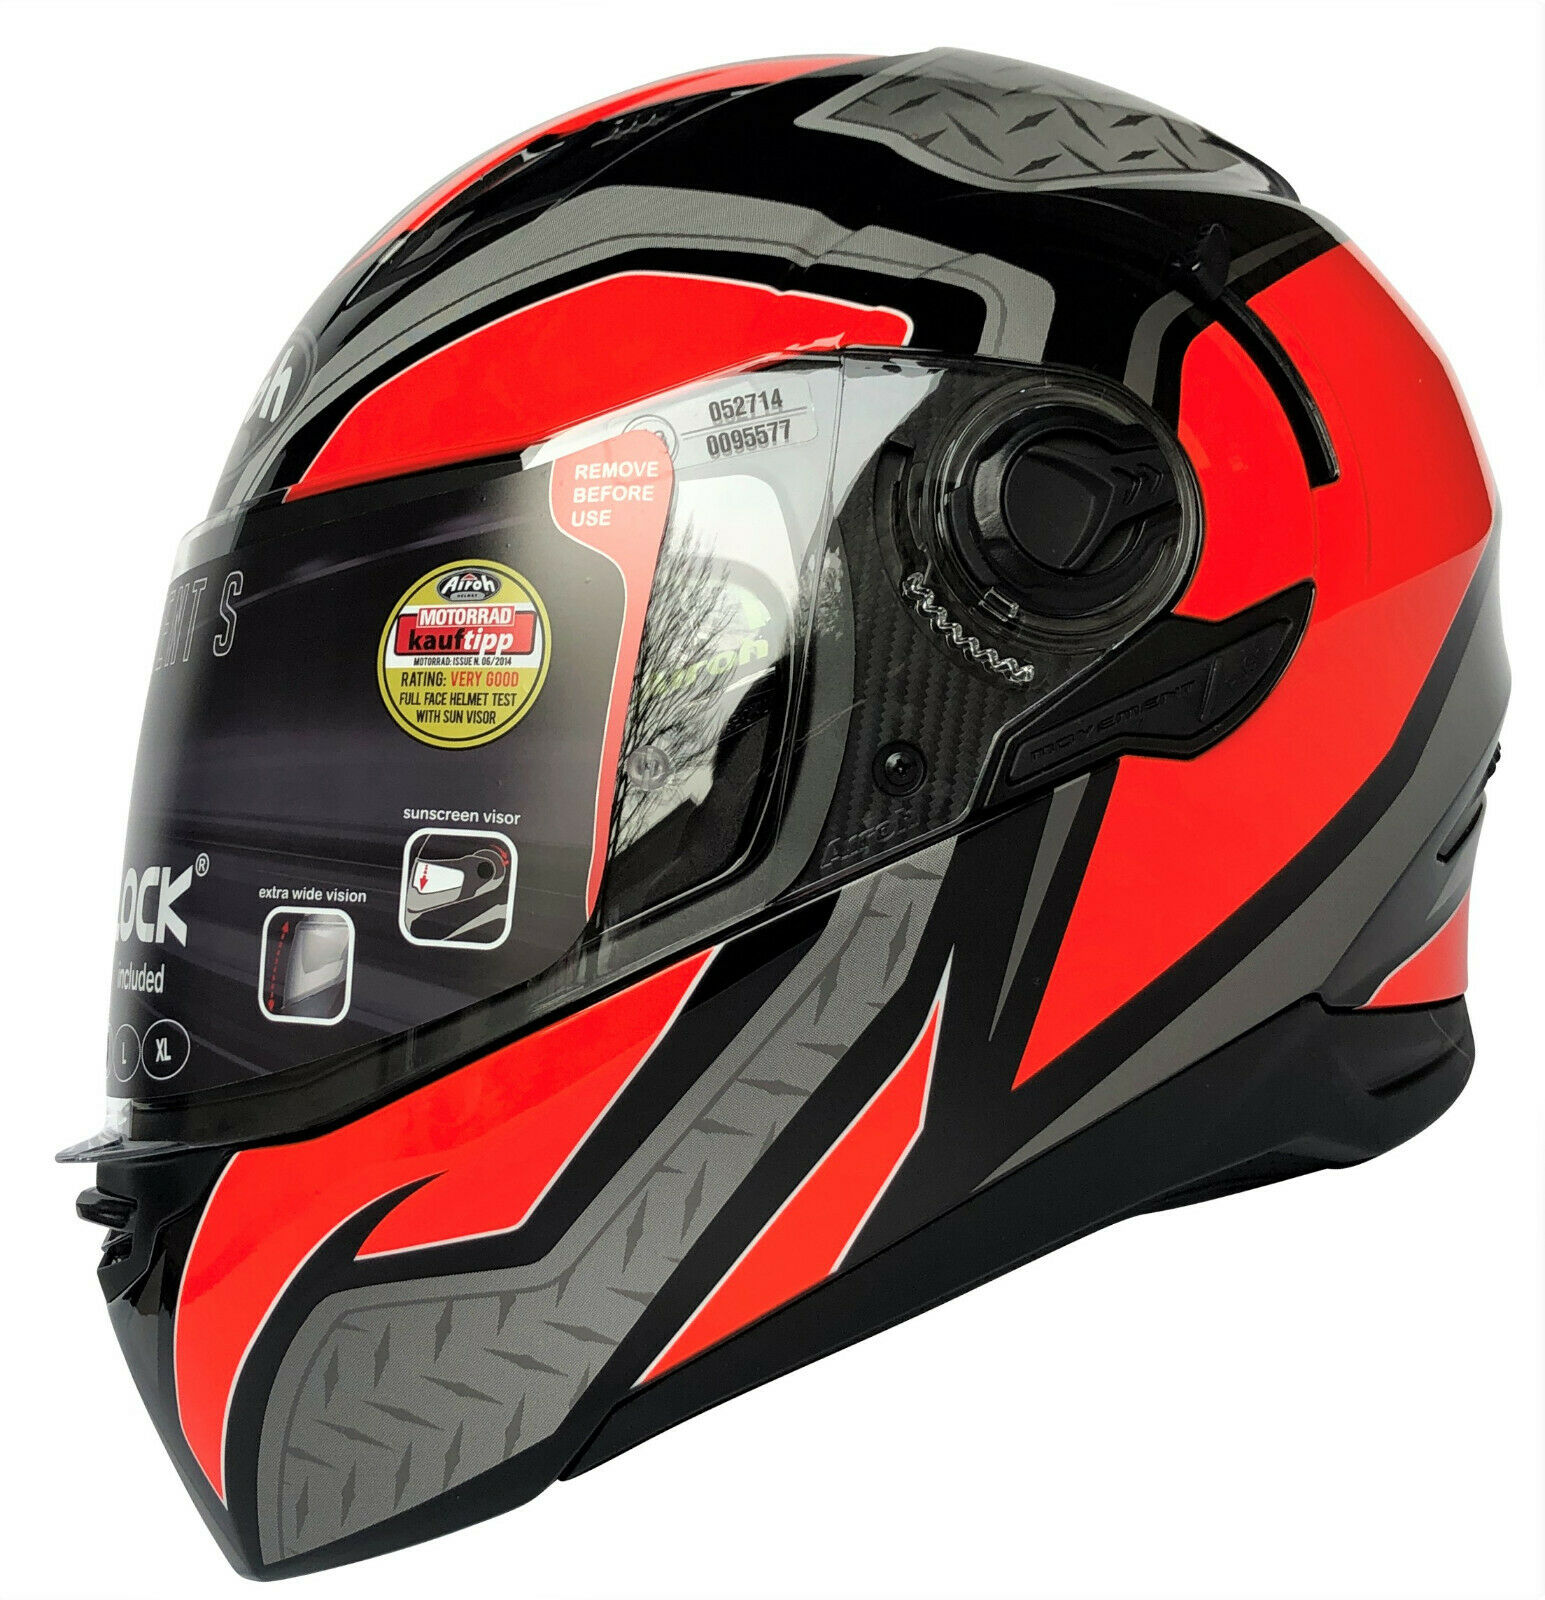 CASCO MOTO AIROH MOVEMENT S 2018 STEEL ORANGE GLOSS MVSST32